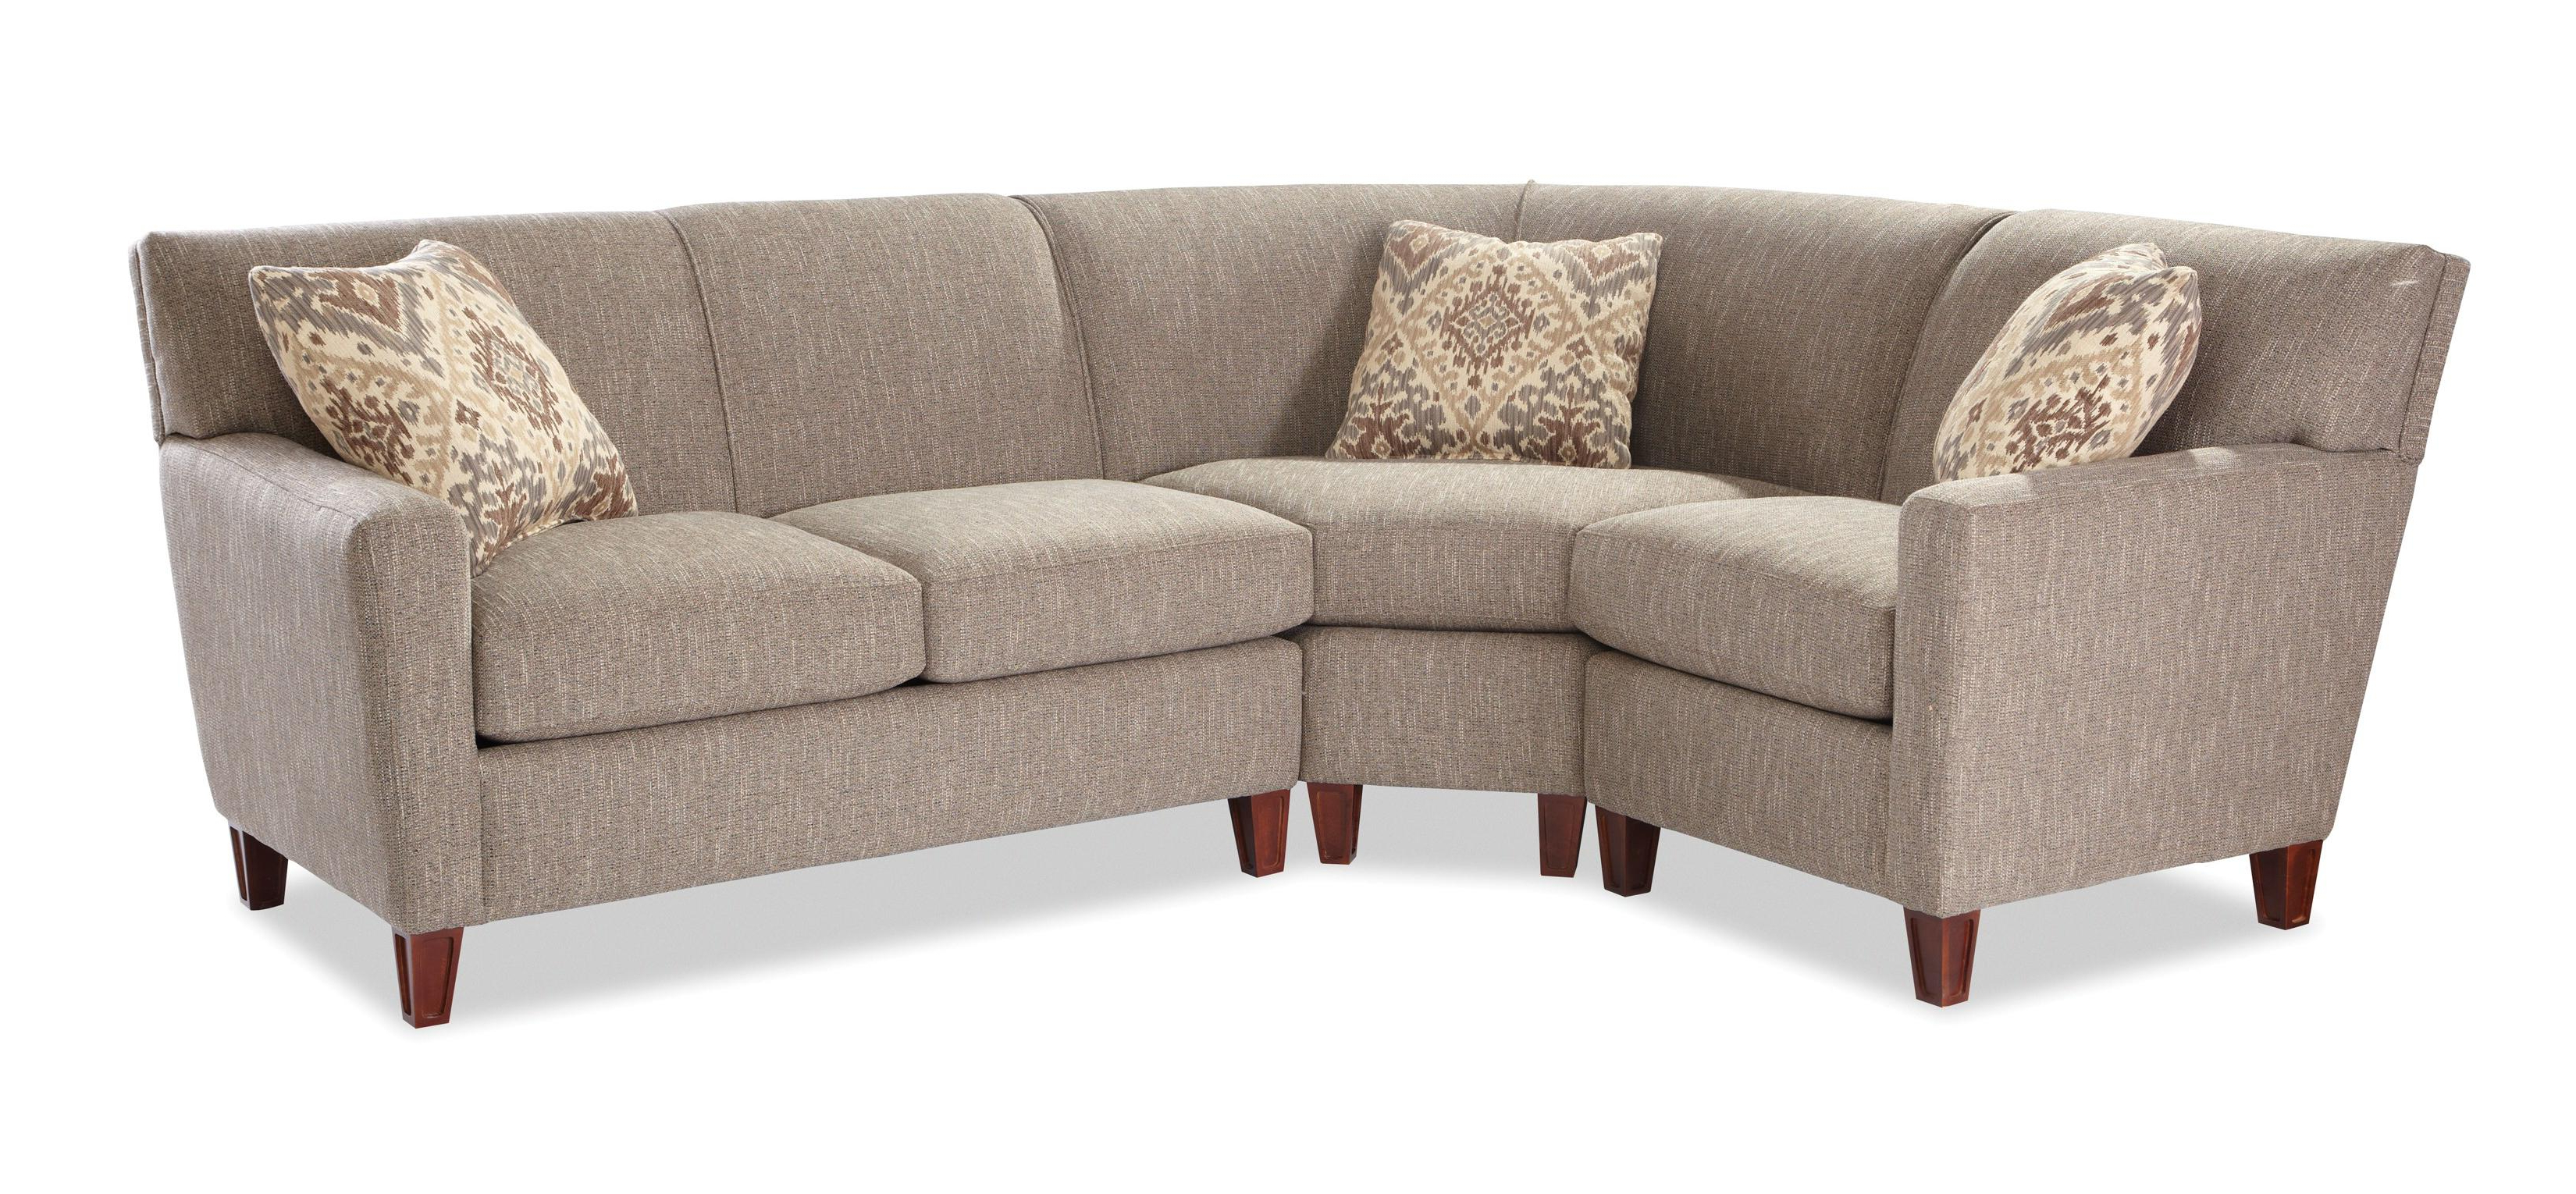 Turdur 2 Piece Sectionals With Raf Loveseat With Regard To Most Up To Date Laf Sofa Raf Loveseat (View 17 of 20)